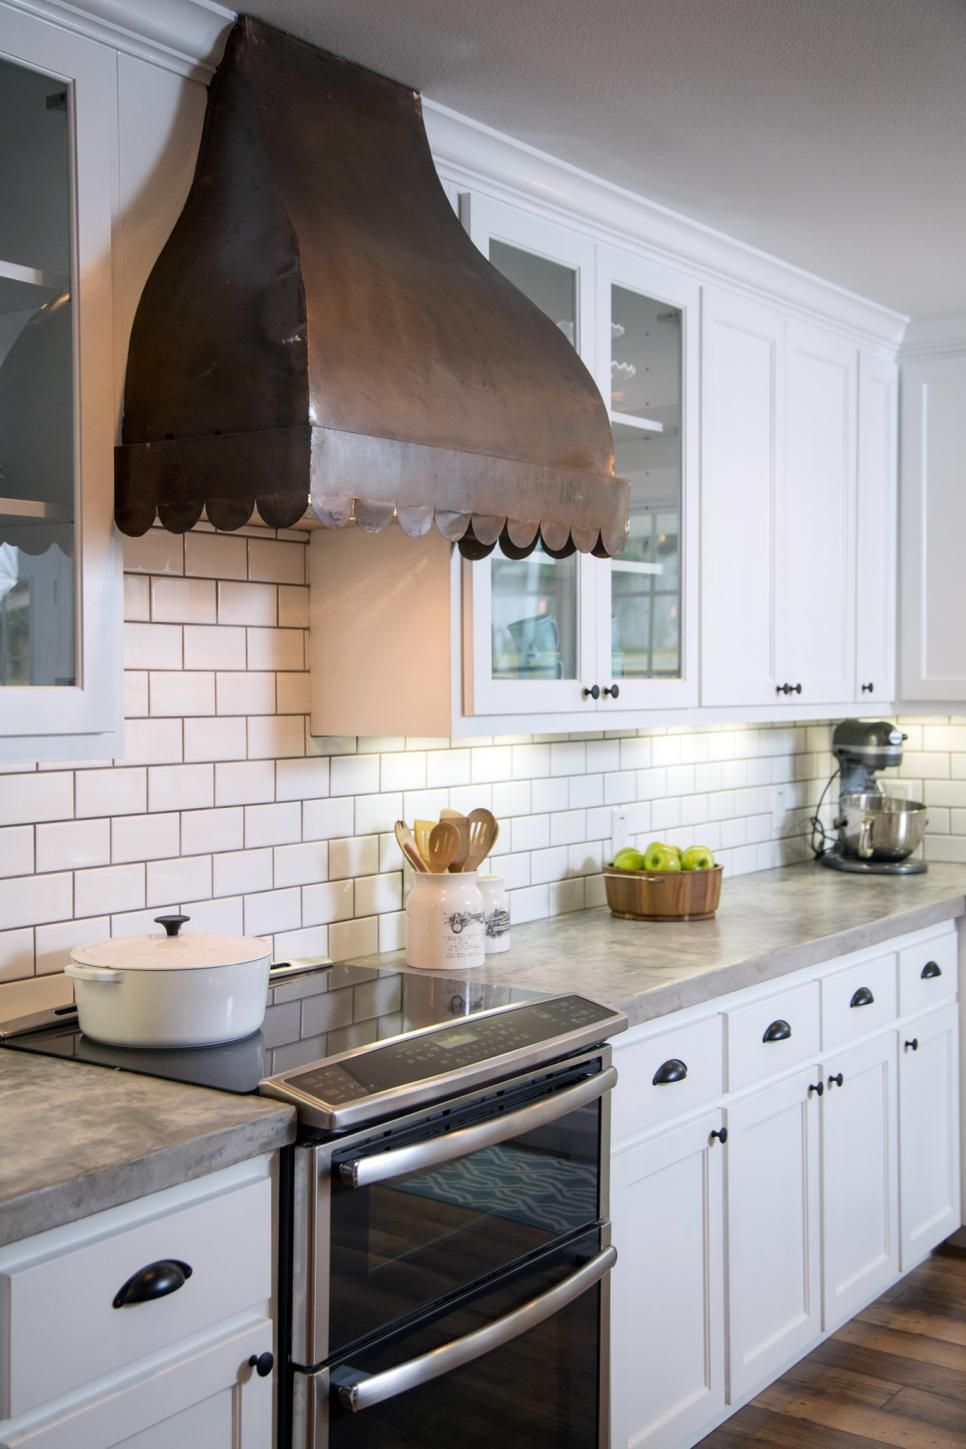 Modern Accents Like The Cement Countertops And Subway Tile Backsplash With A Dark Grout Contrast Beautifully E S Vintage Look